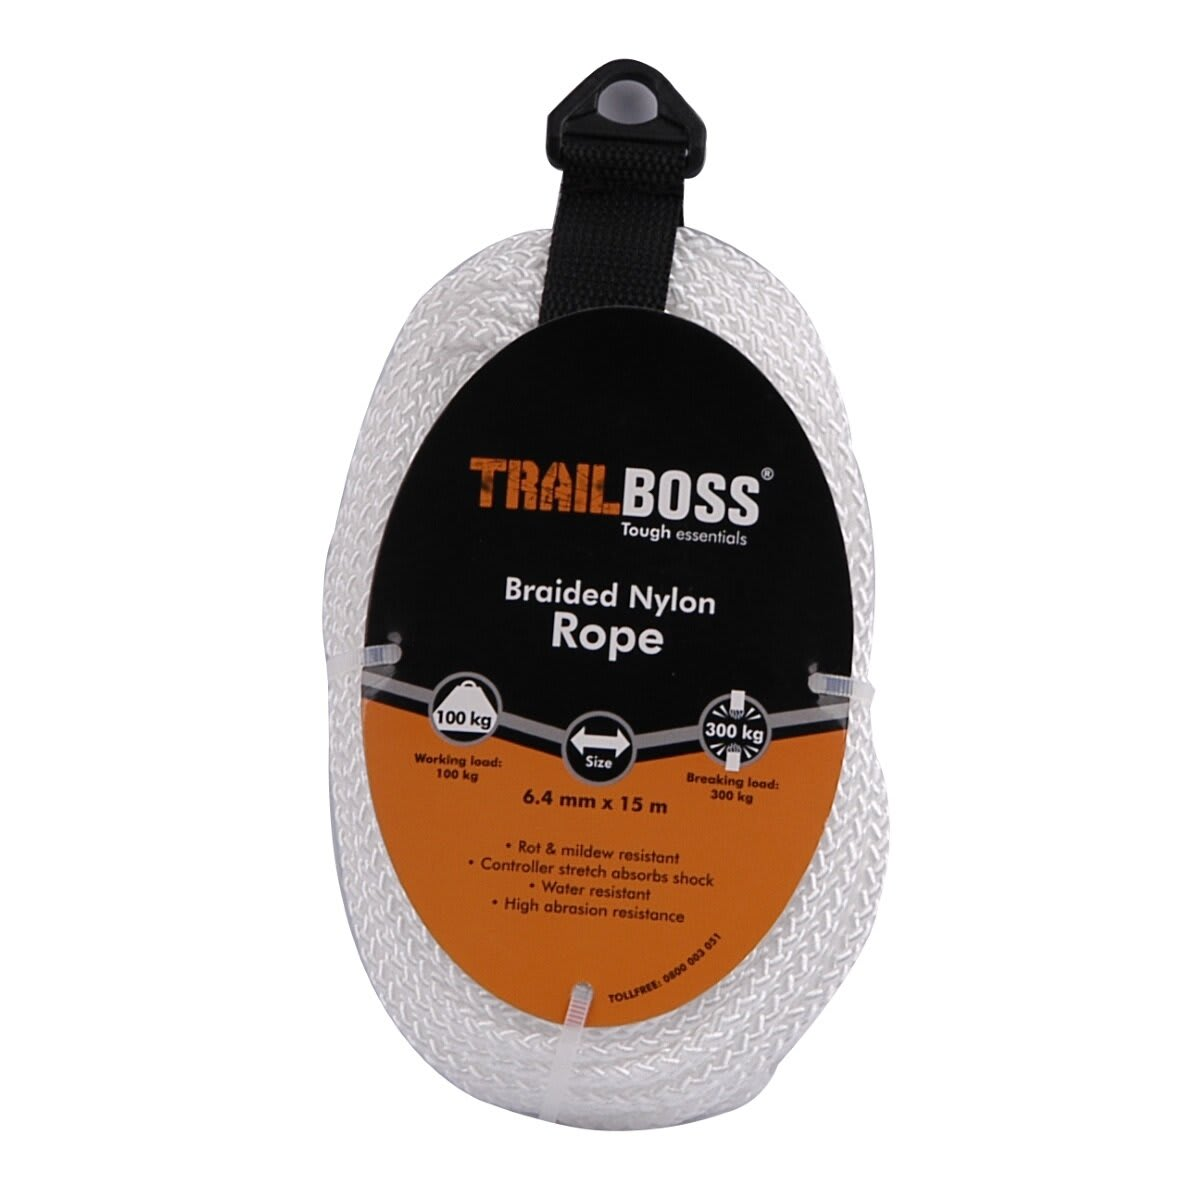 TrailBoss 6.4mm x 15m Braided Nylon Rope